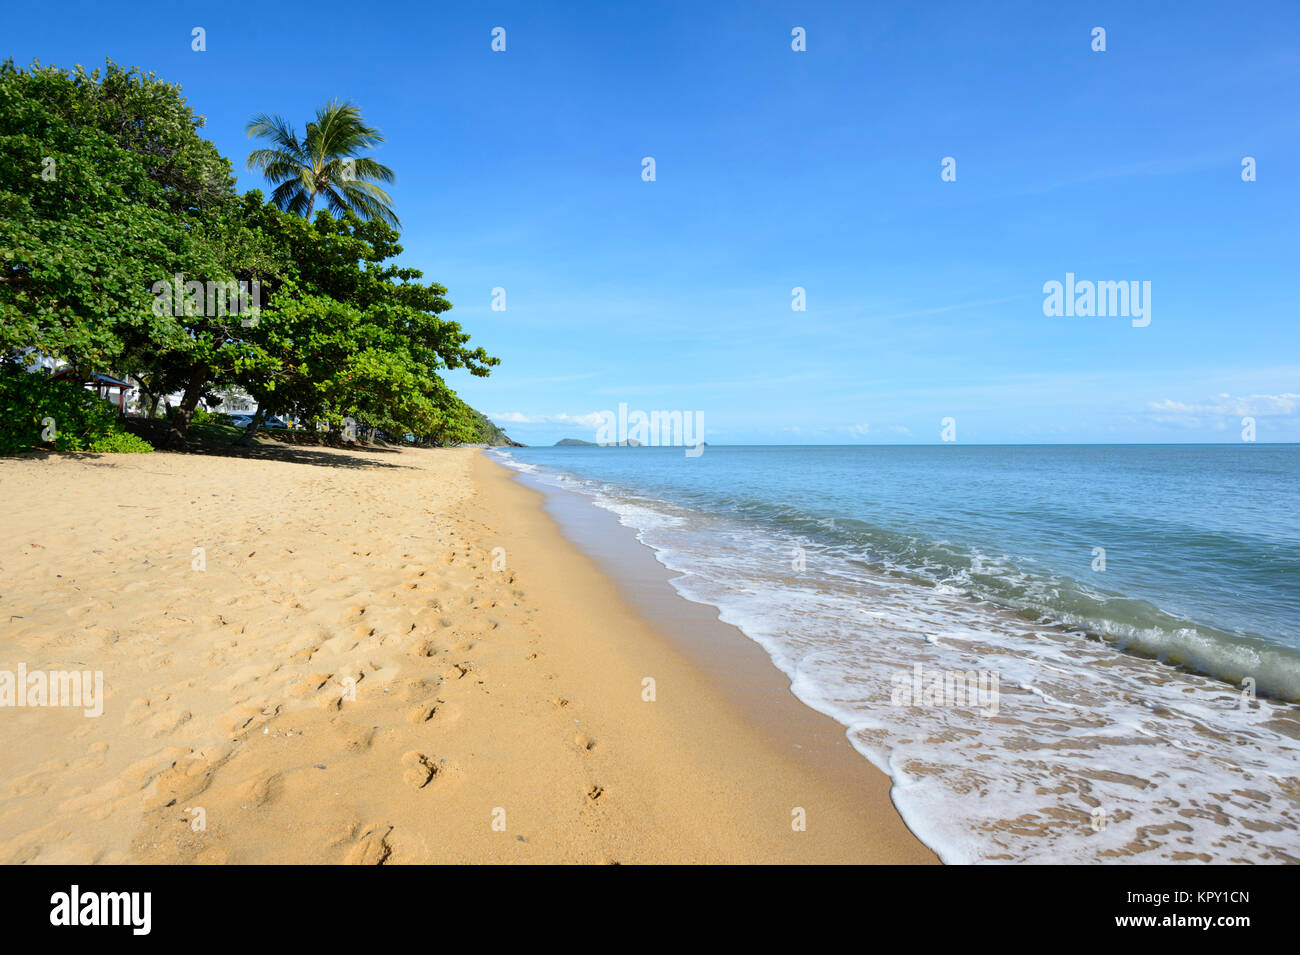 View of scenic Trinity Beach, a popular Northern Beaches suburb of Cairns, Far North Queensland, FNQ, QLD, Australia Stock Photo